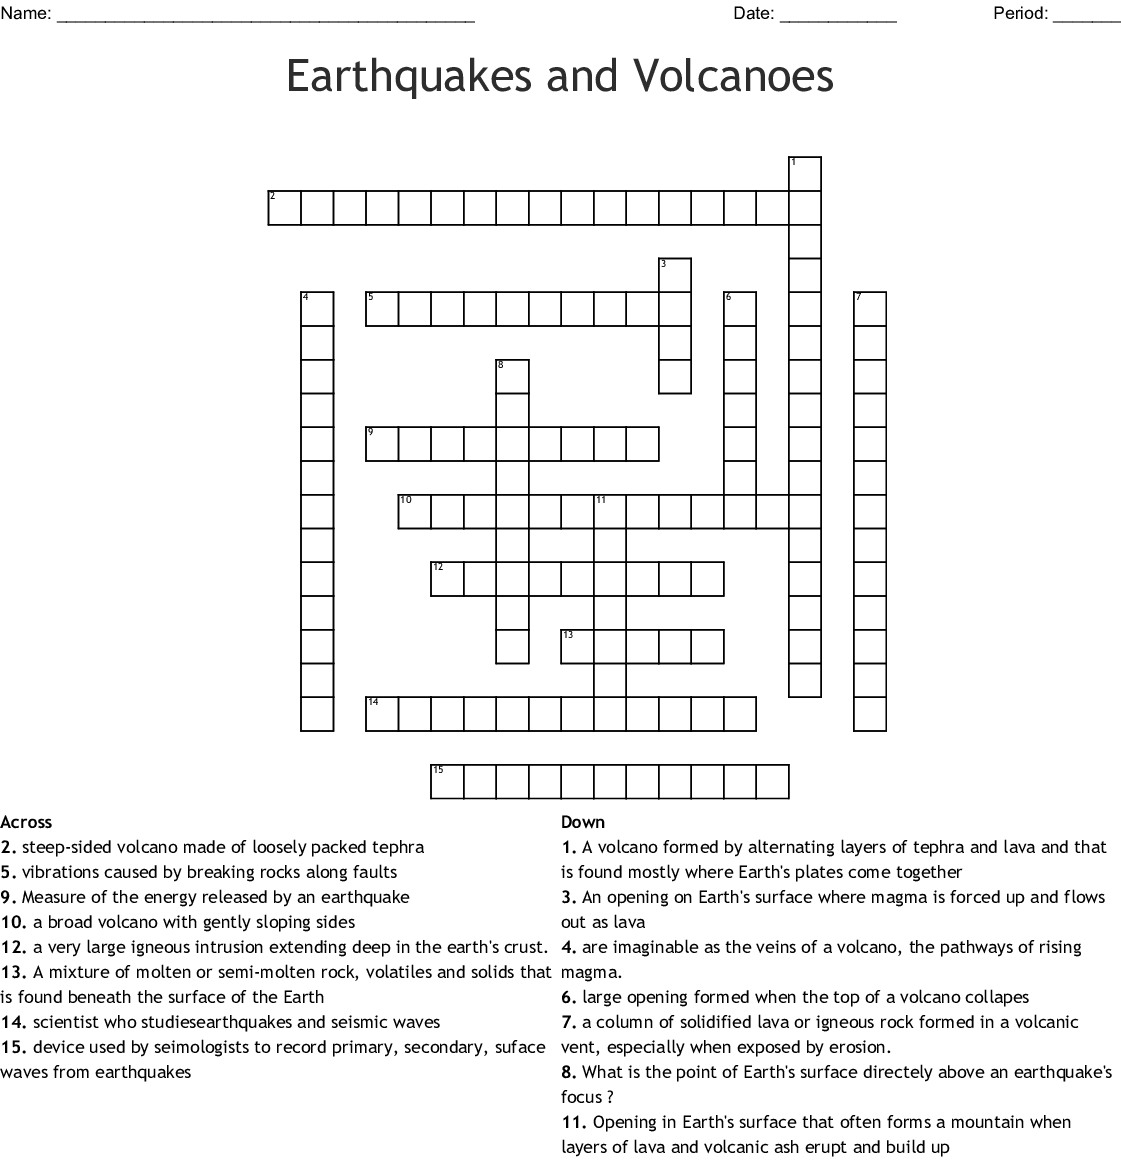 Earthquakes And Volcanoes Crossword